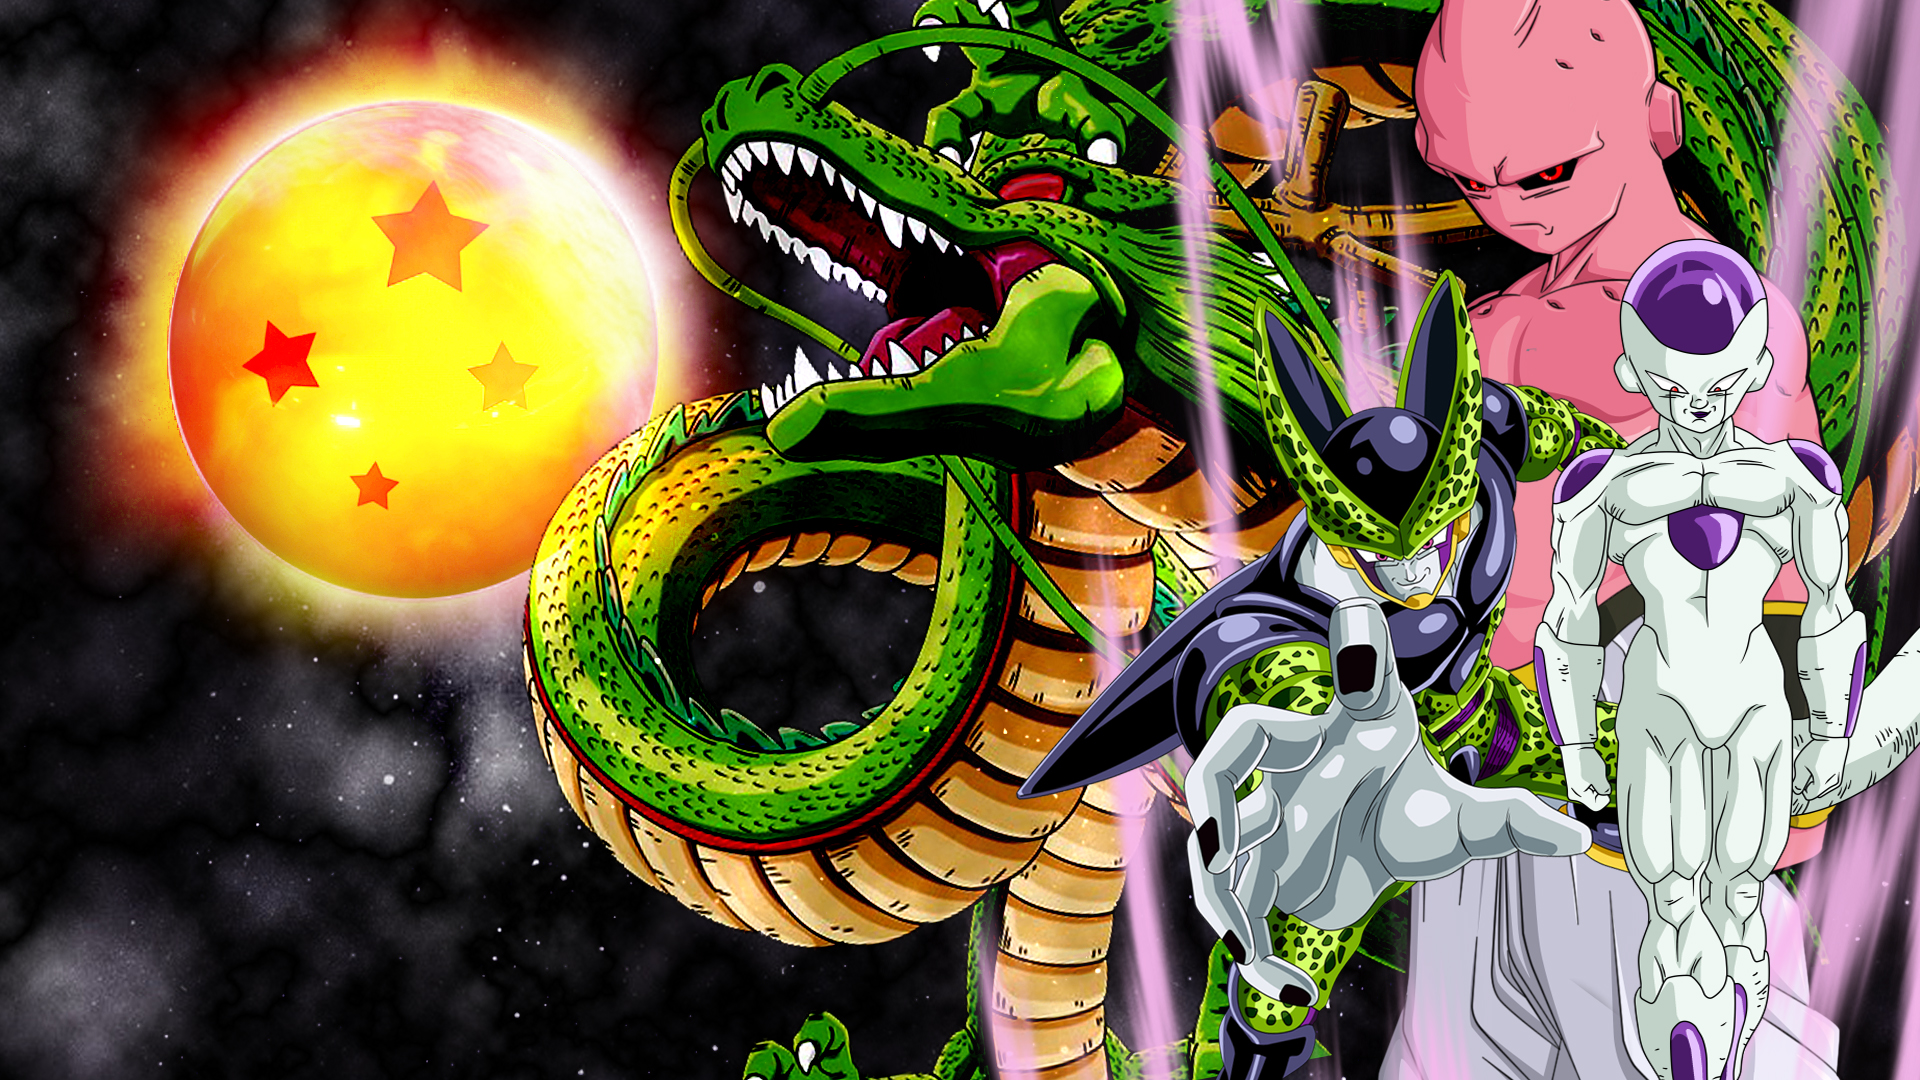 frieza cell and buu wallpaper by vulc4no on deviantart